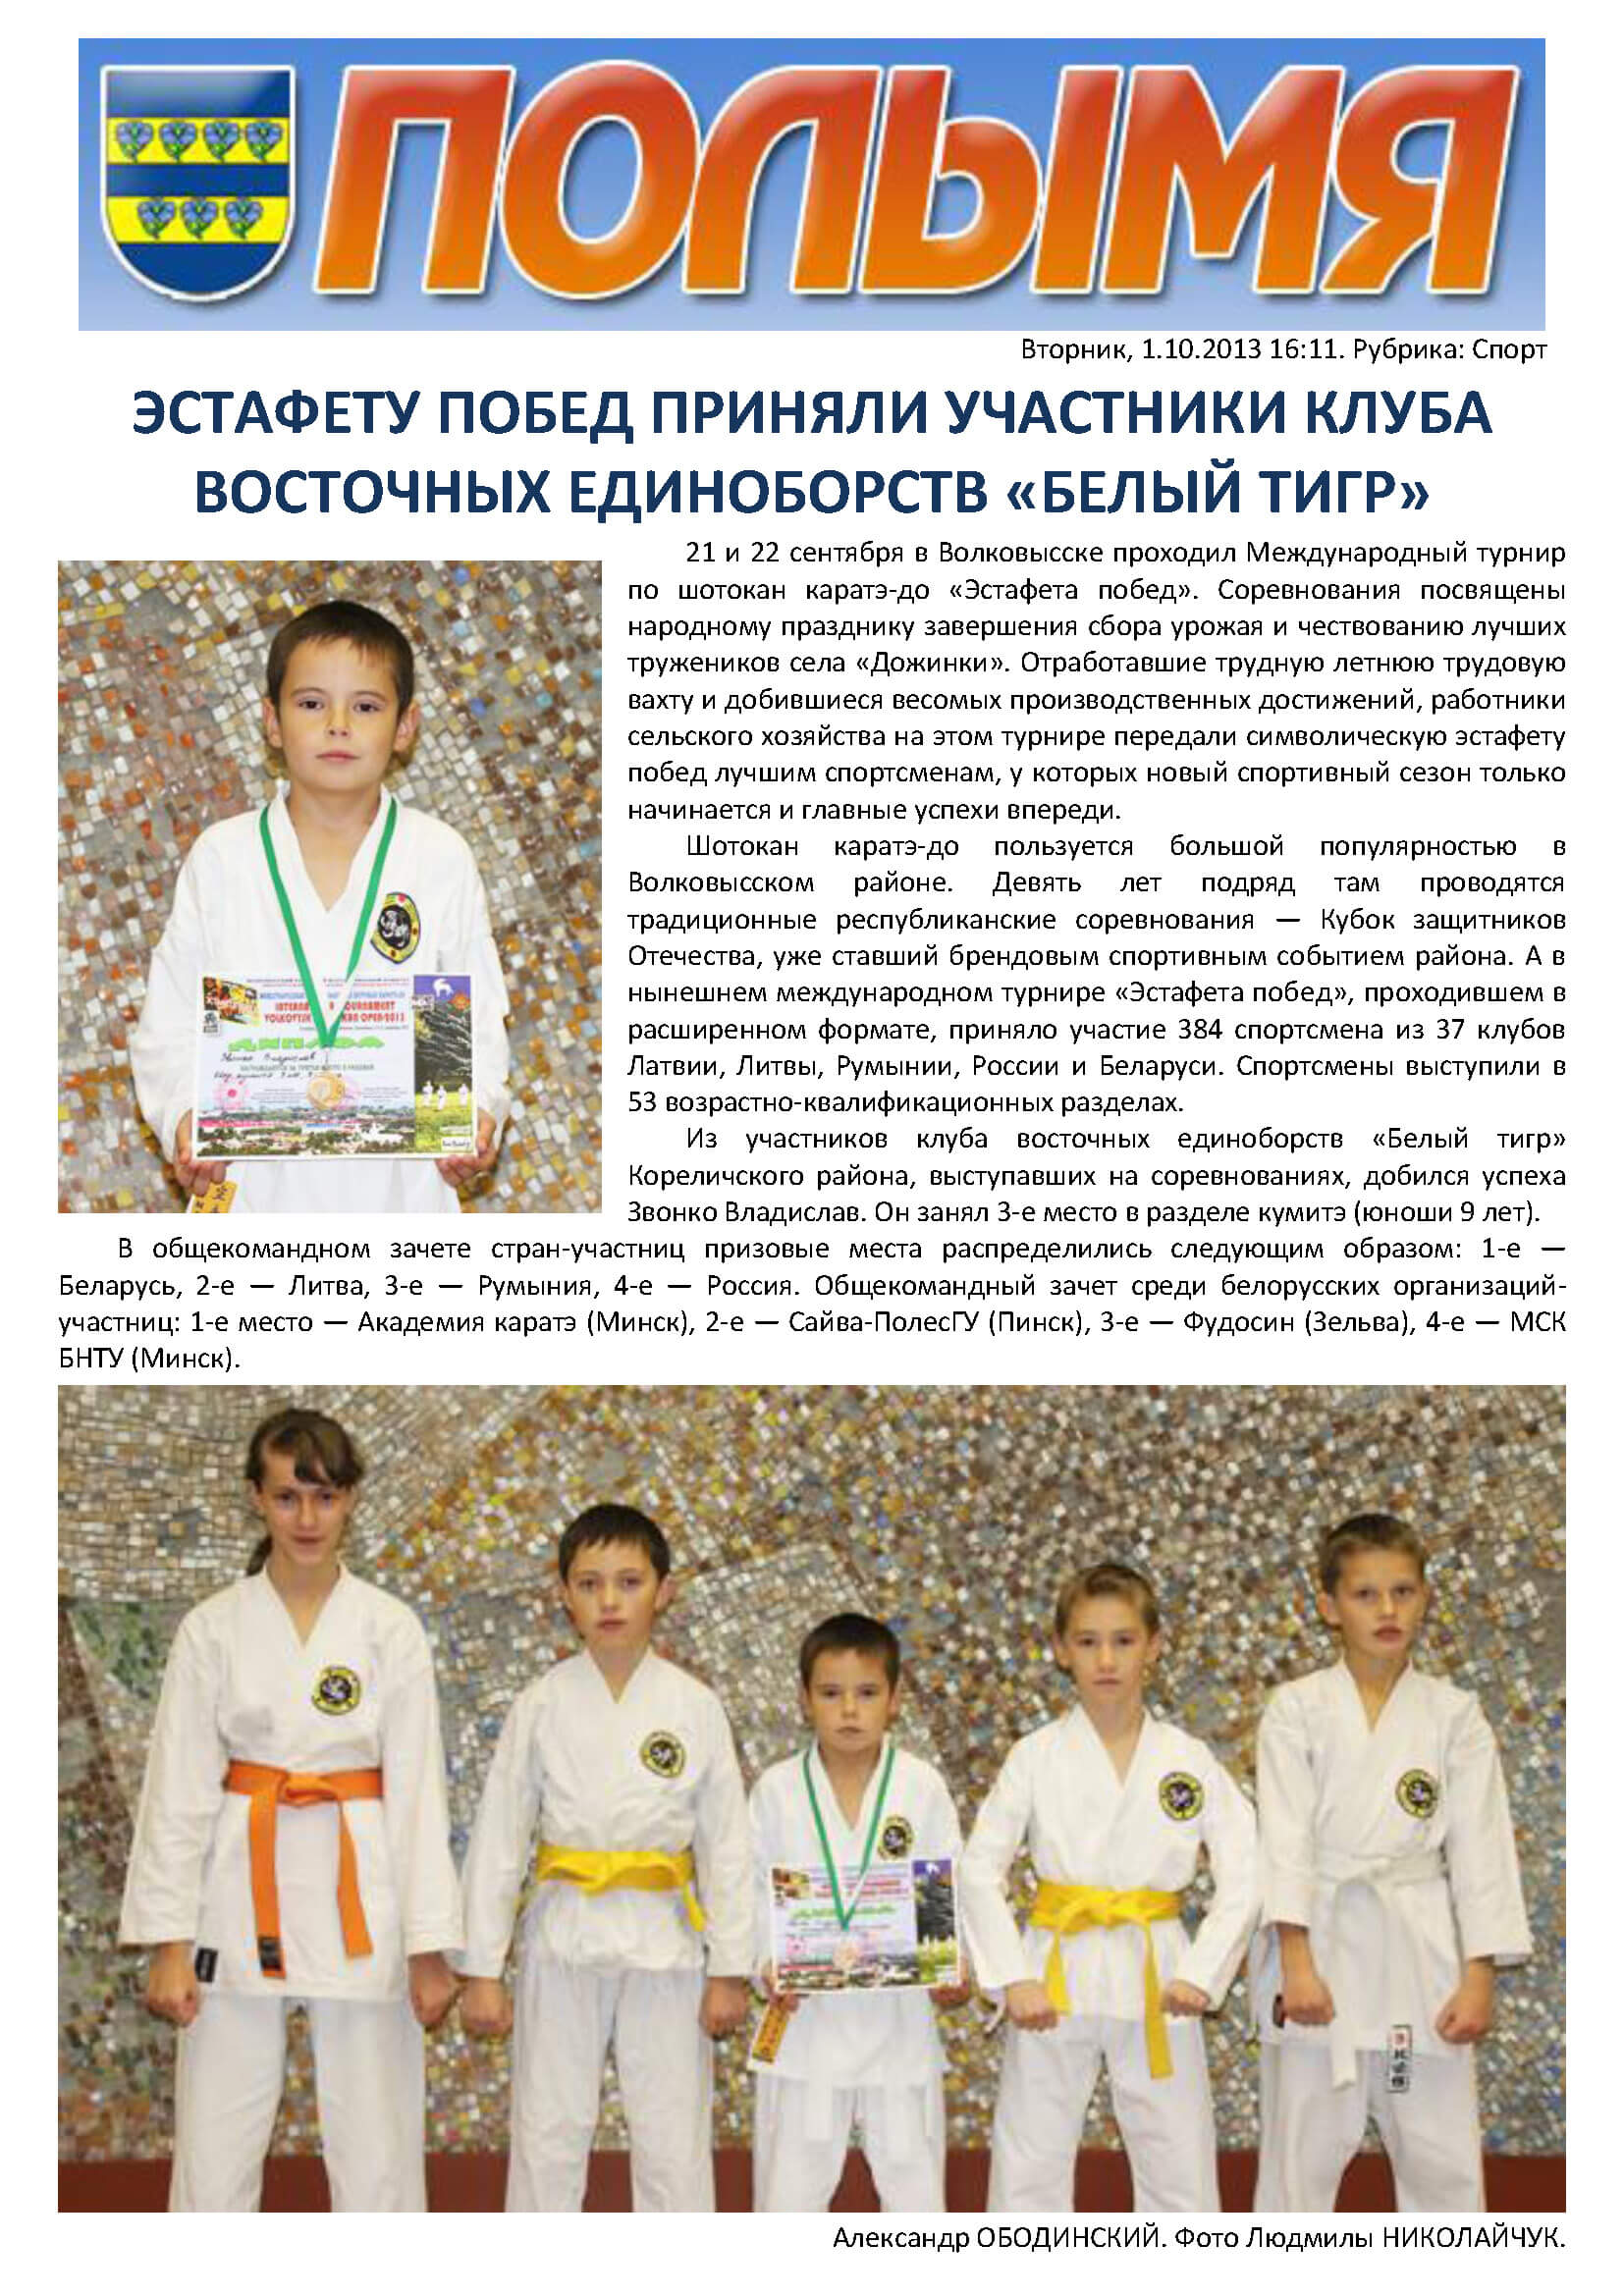 http://karate-academy.by/wp-content/uploads/2013/10/%D0%AD%D1%81%D1%82%D0%B0%D1%84%D0%B5%D1%82%D1%83-%D0%BF%D0%BE%D0%B1%D0%B5%D0%B4-%D0%BF%D1%80%D0%B8%D0%BD%D1%8F%D0%BB-%D0%91%D0%B5%D0%BB%D1%8B%D0%B9-%D1%82%D0%B8%D0%B3%D1%80.jpg